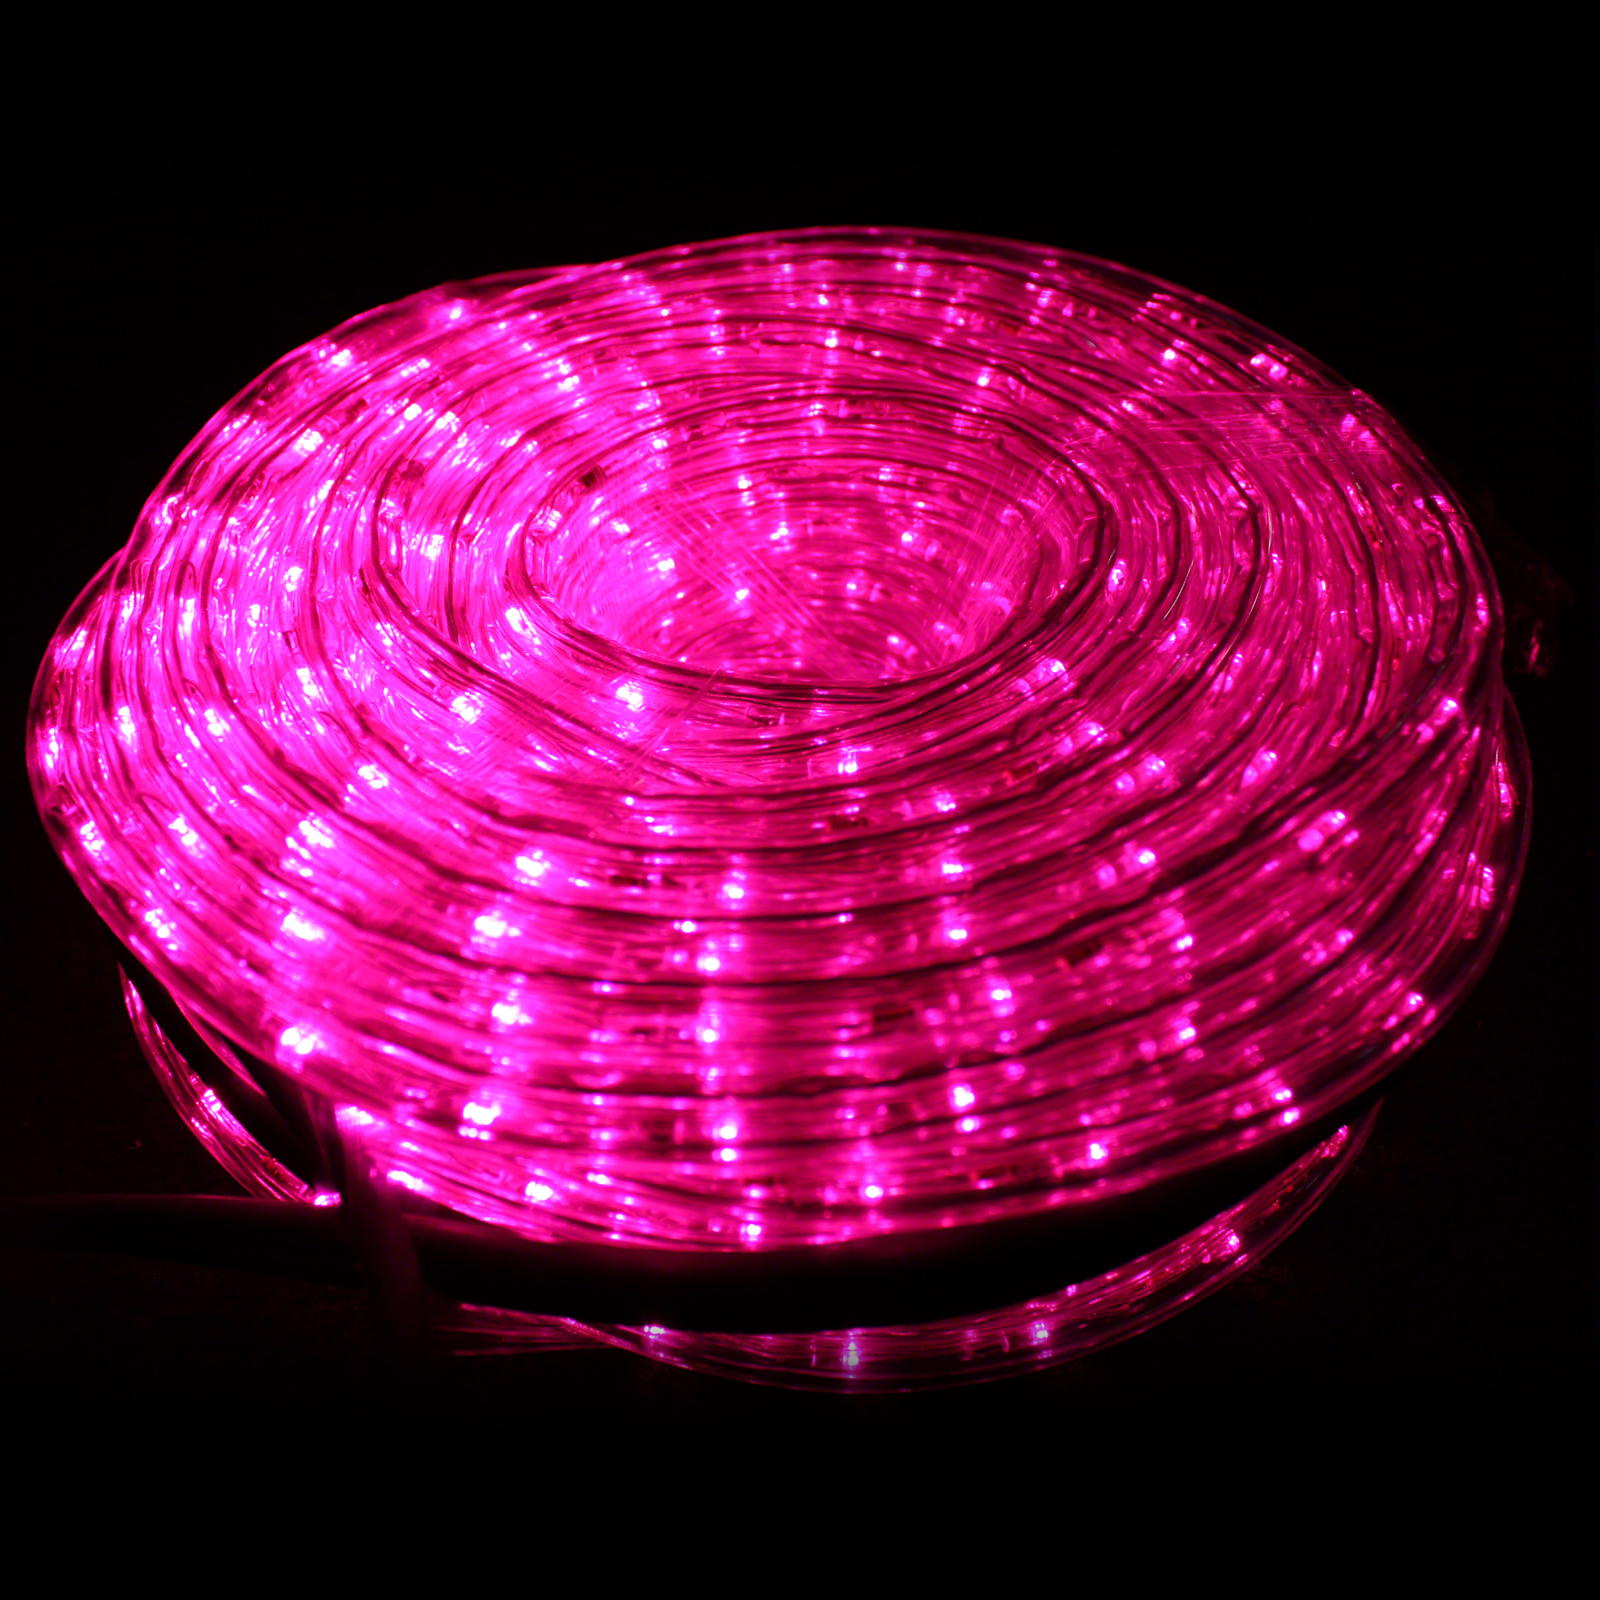 20m led rope light multi function party christmas garden 20m led rope light multi function party christmas aloadofball Image collections